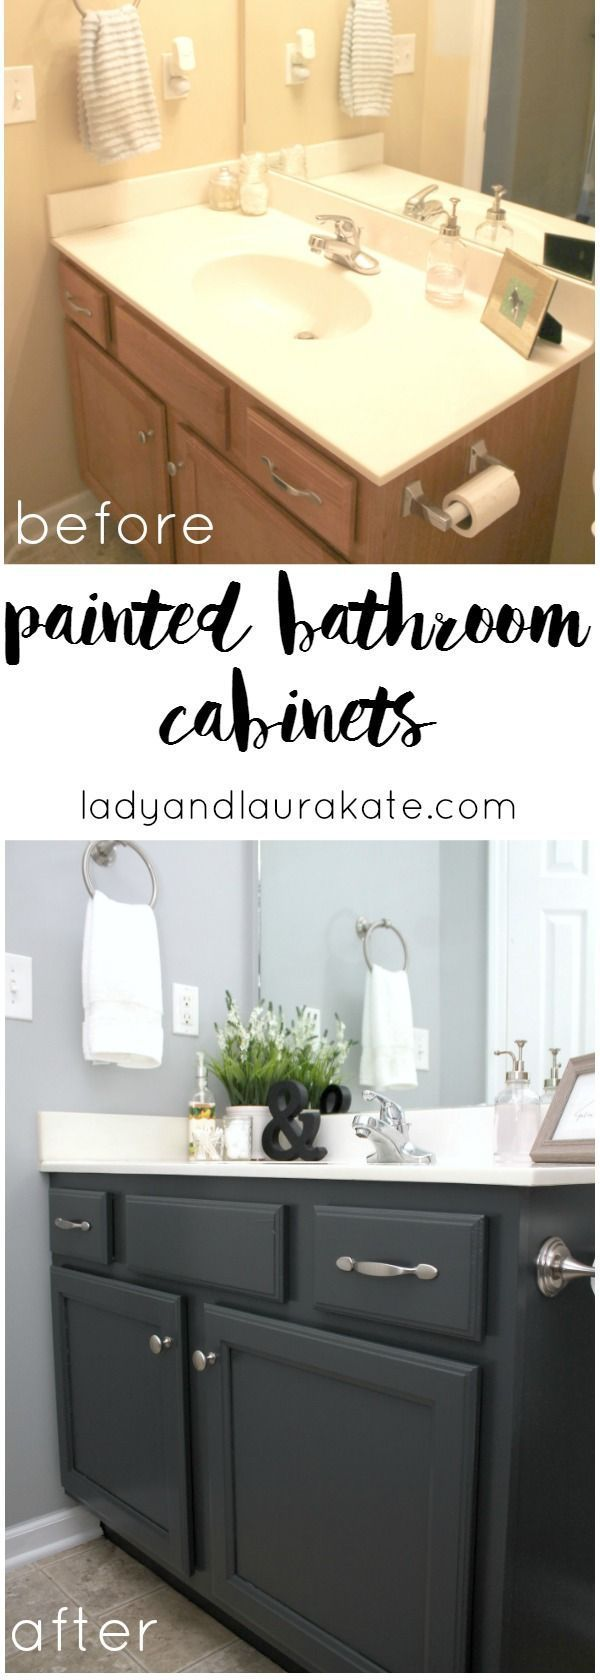 Best 25 updating oak cabinets ideas on pinterest - Bathroom paint colors with oak cabinets ...